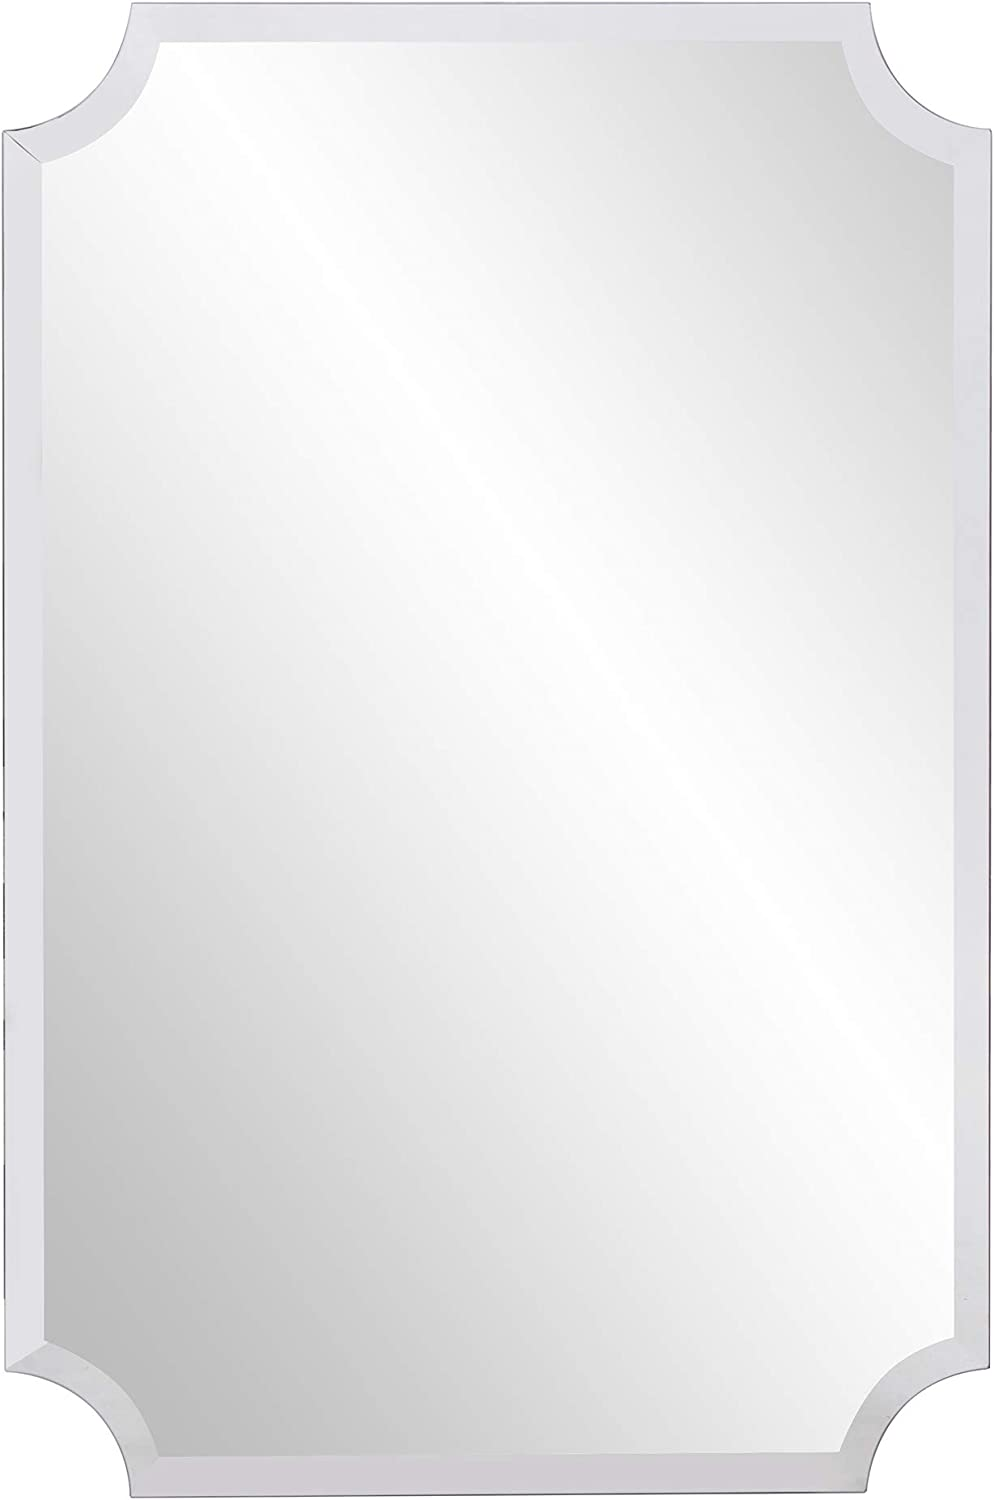 Howard Elliott Frameless Scalloped Hanging Wall Mirror, Rectangle (24 x 36 Inch), Silver - Bathroom, Vanity, Bedroom: Home & Kitchen